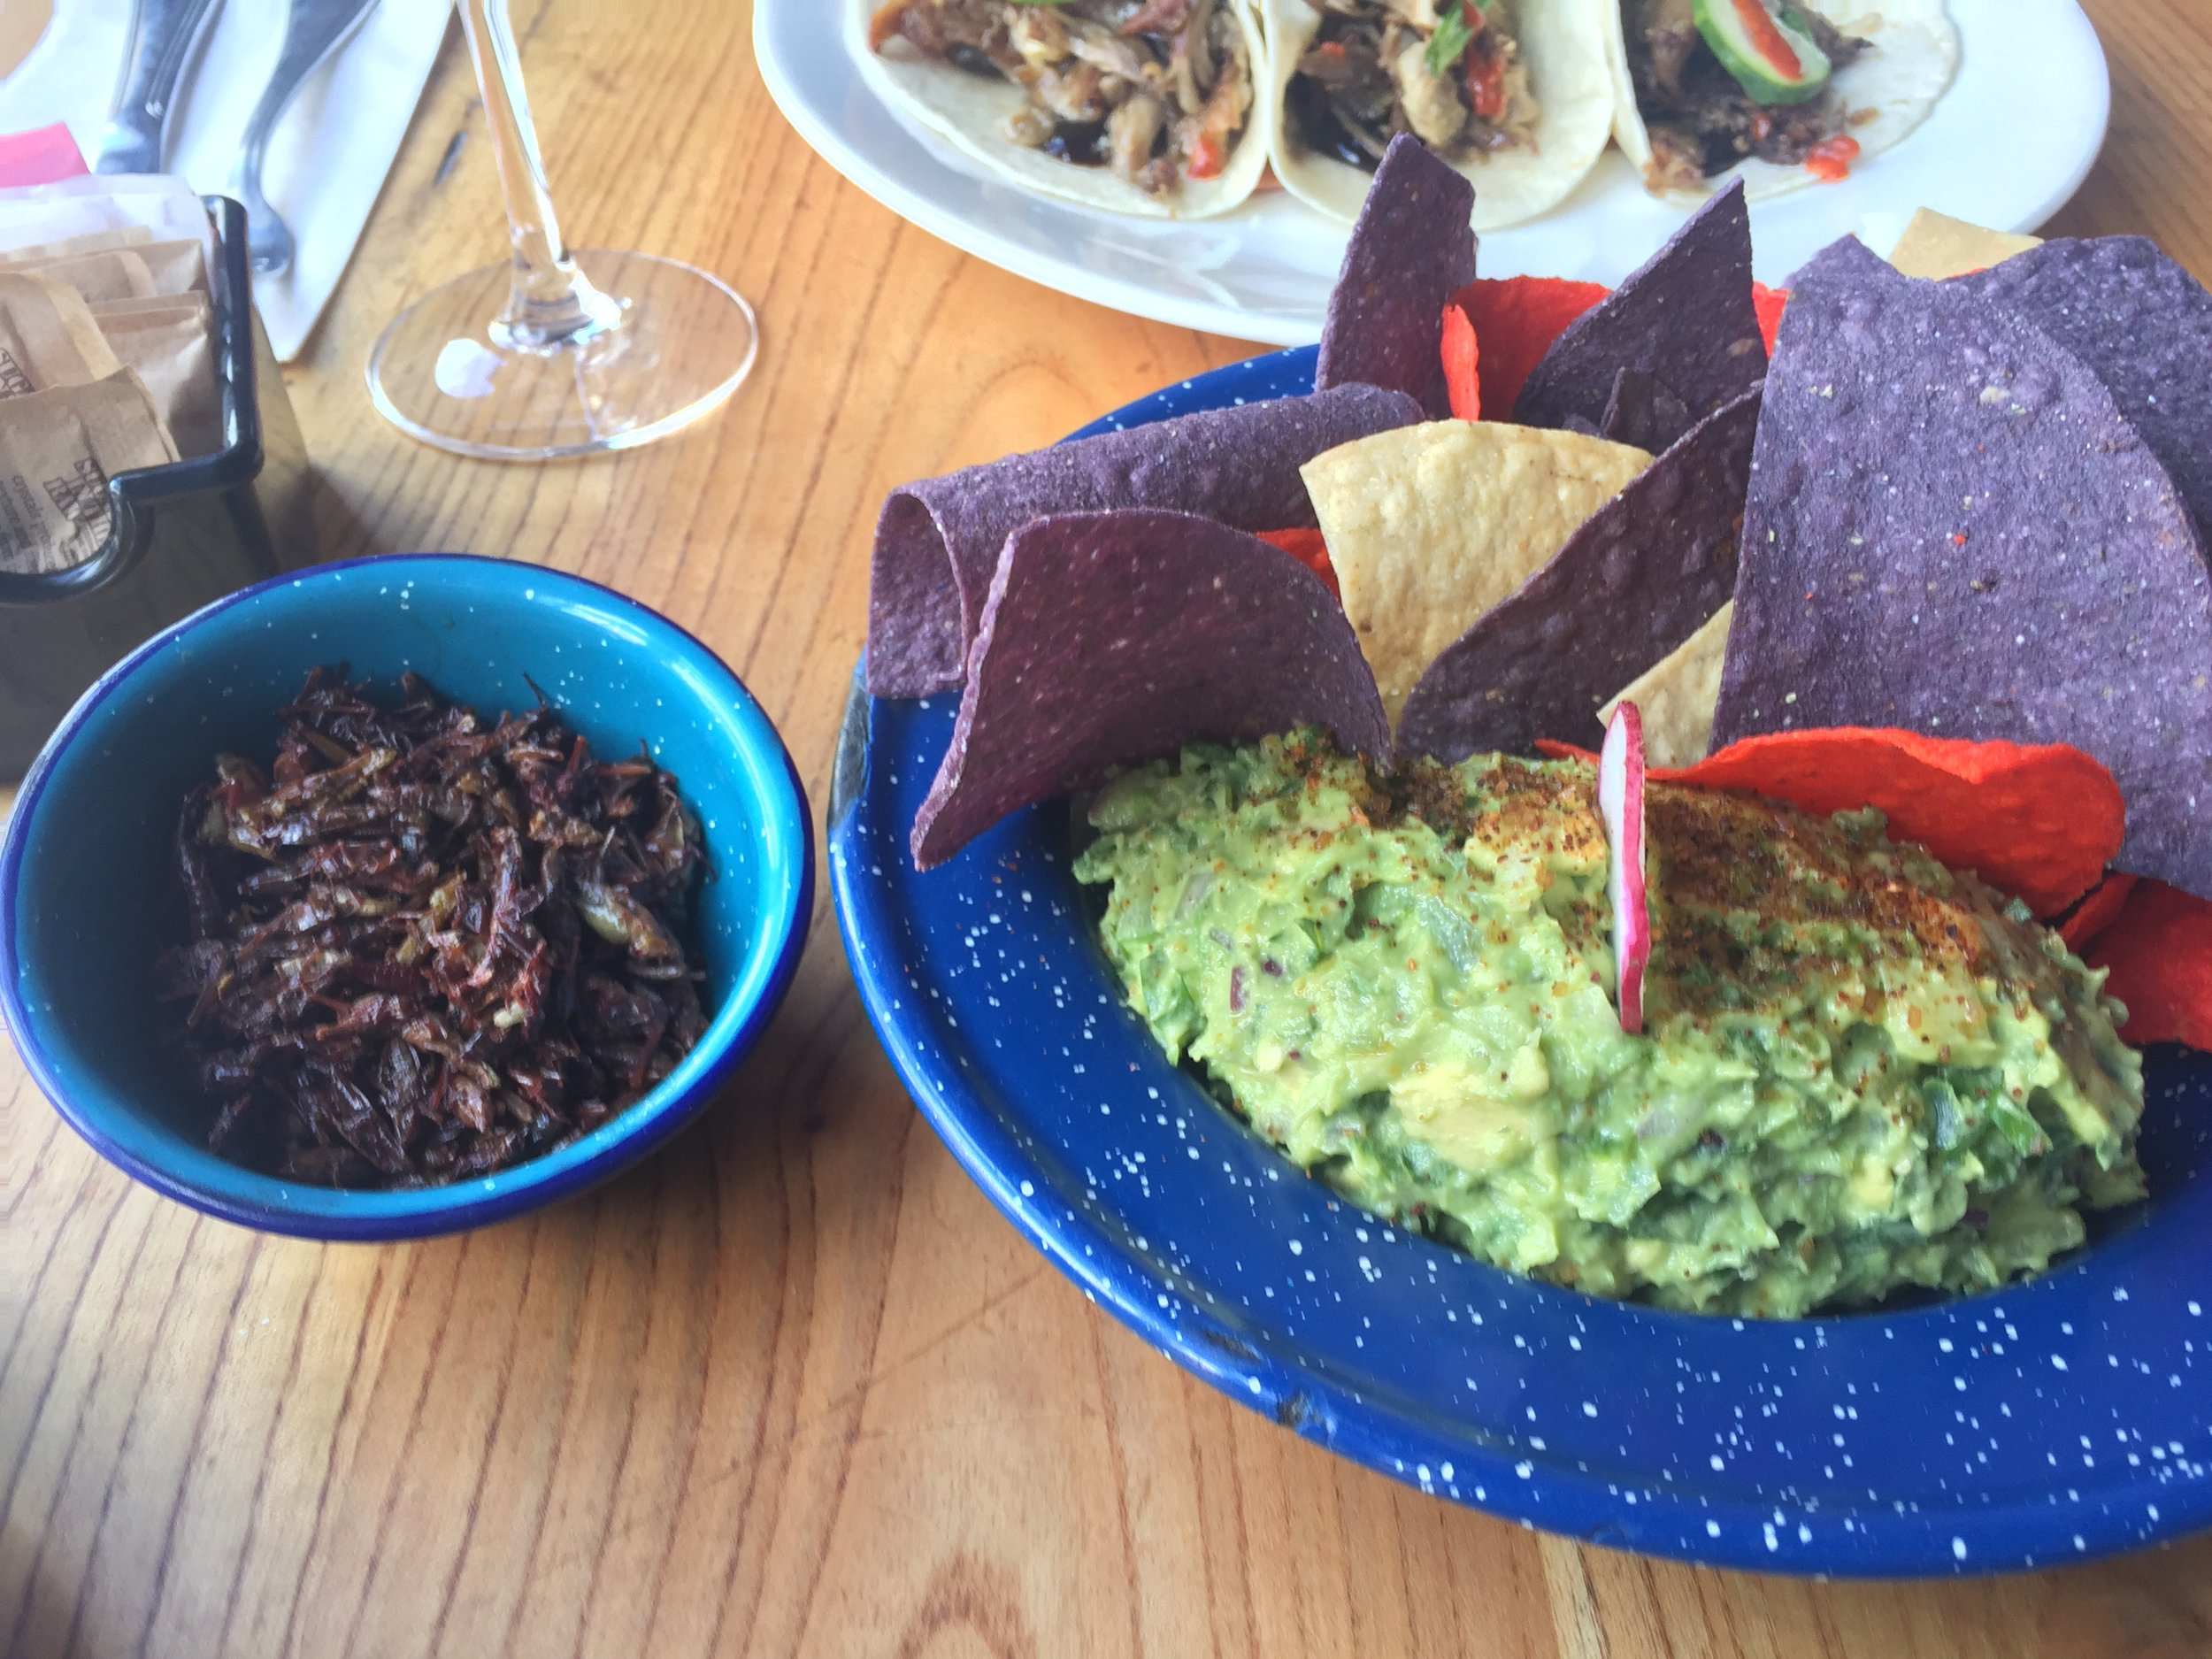 Guacamole with a side of sautéed grasshoppers